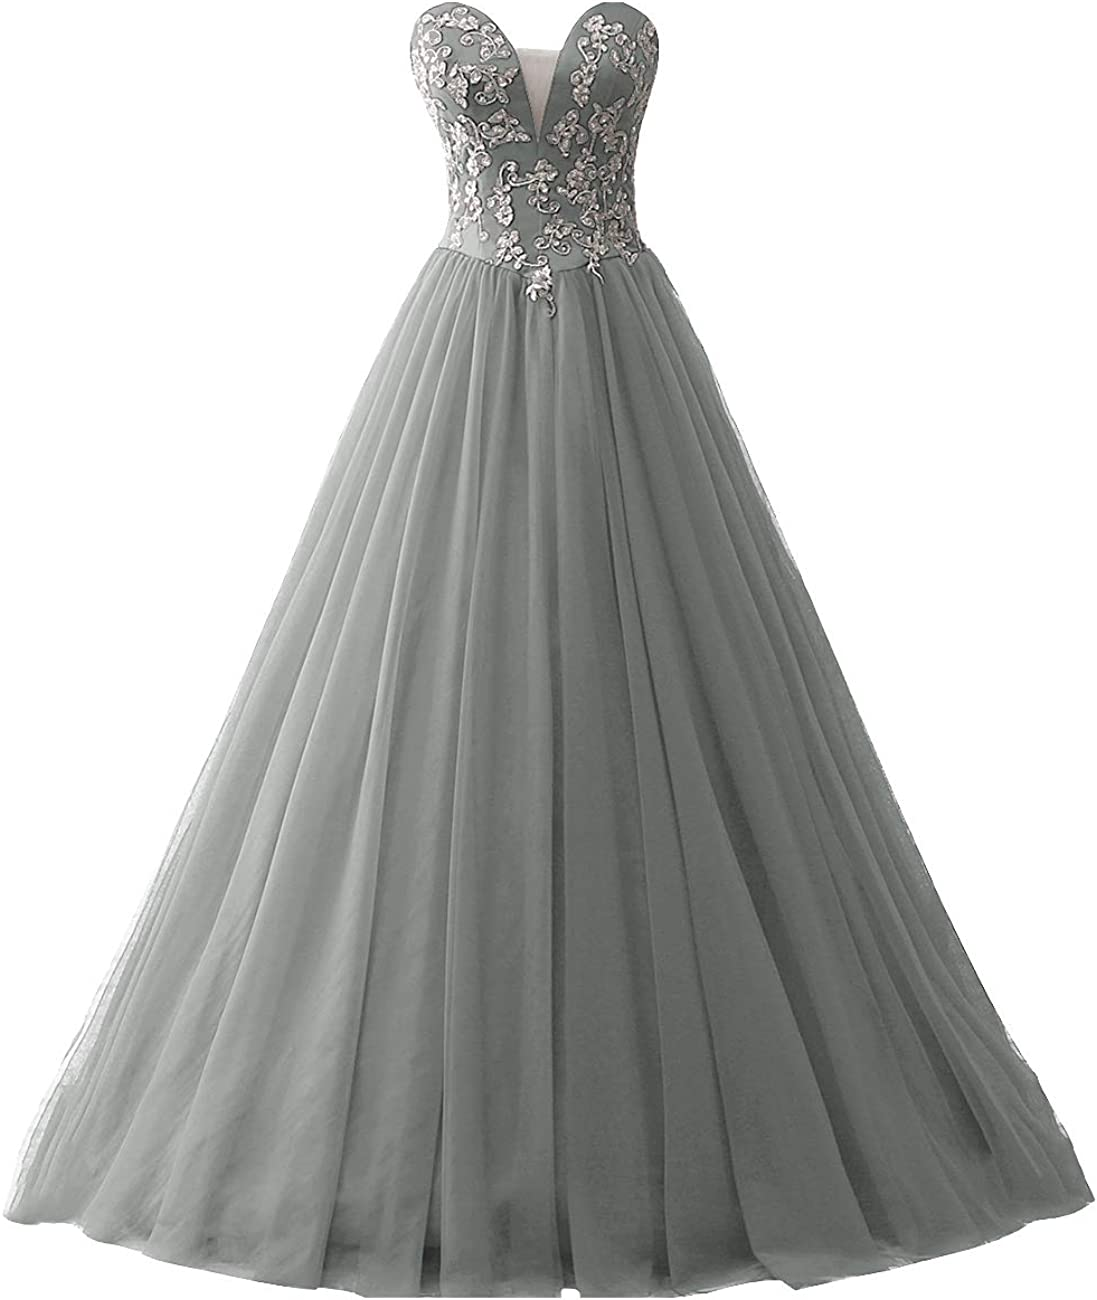 JAEDEN Prom Dresses Ball Gown Quinceanera Dress Tulle Lace Prom Dress Strapless